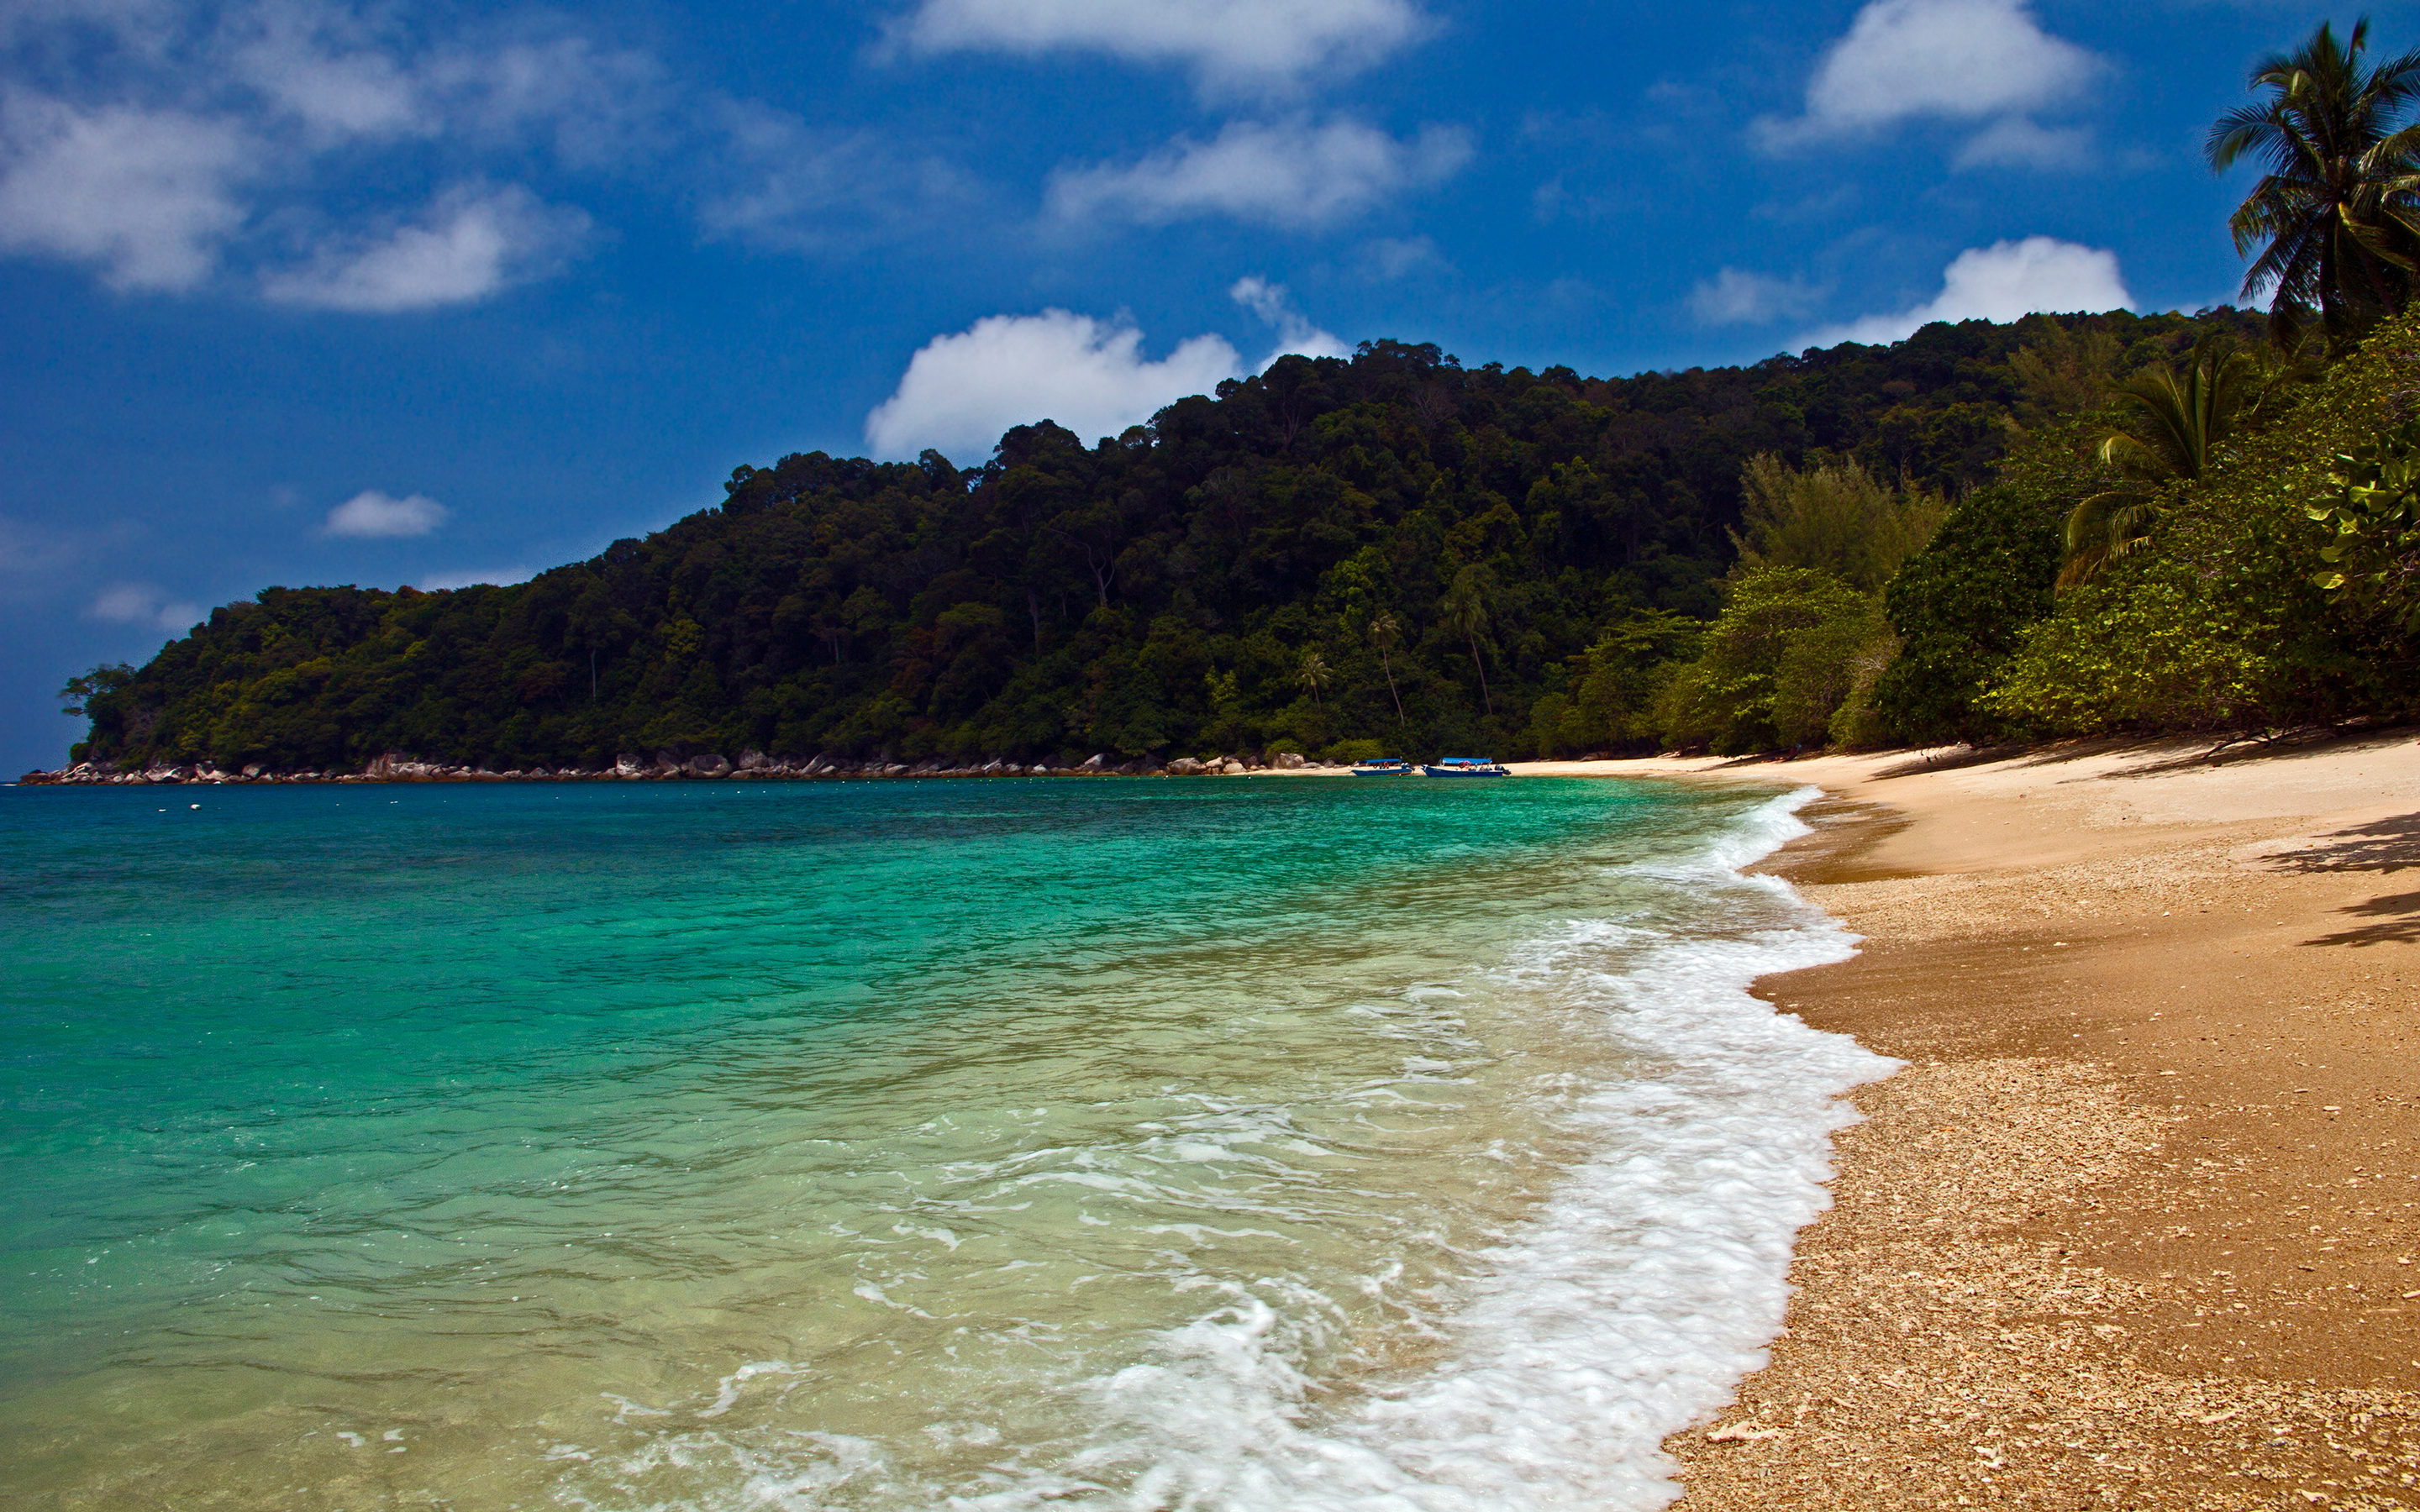 Beach malaysia hd desktop wallpapers 4k hd for 3d wallpaper for home malaysia